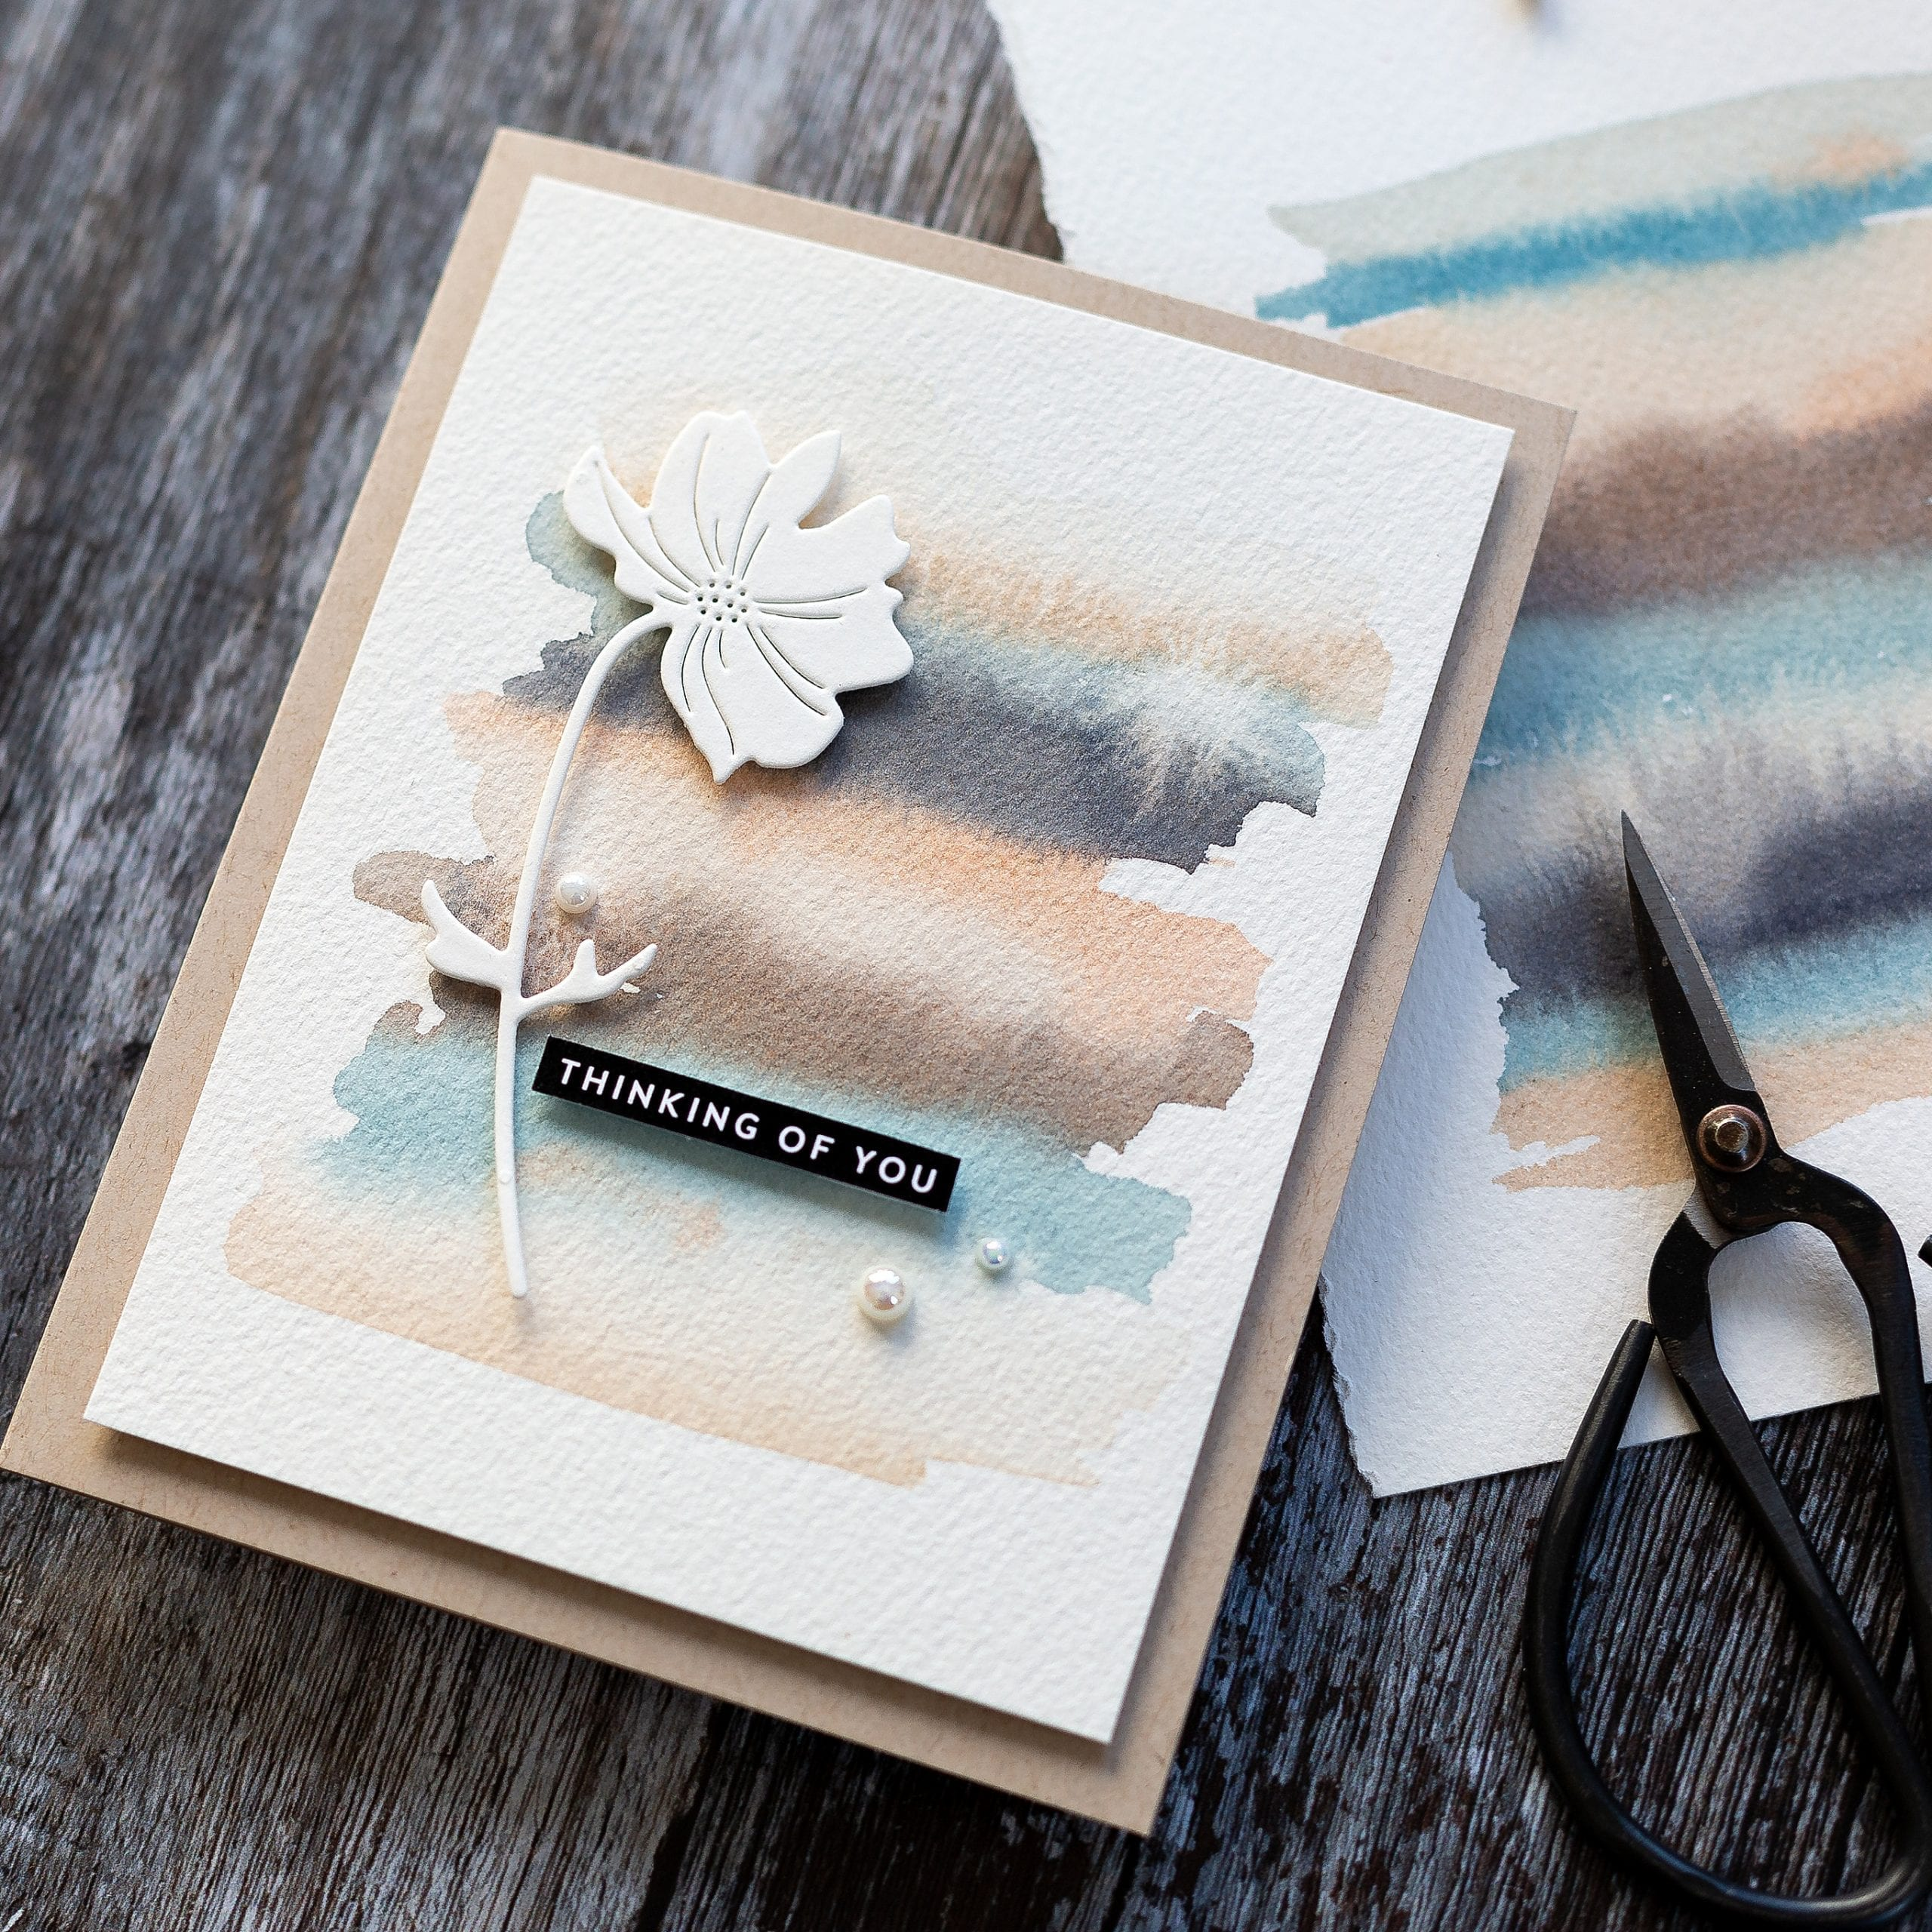 Easy watercolour background handmade card tutorial by Debby Hughes using supplies from Simon Says Stamp #watercolor #homemade